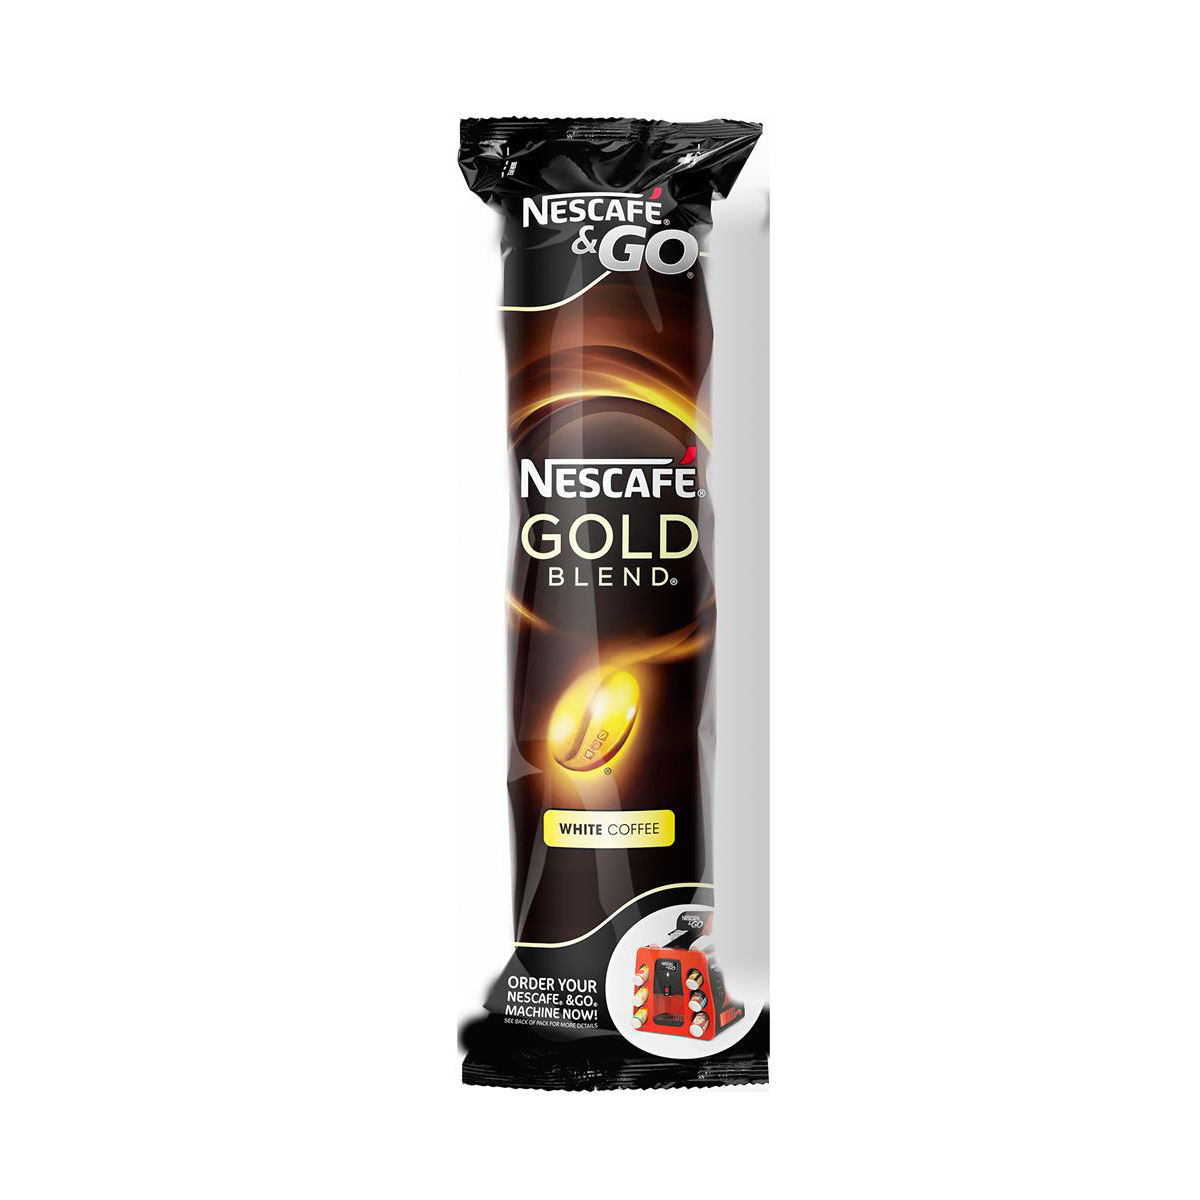 Nescafe & Go Gold Blend White Coffee Foil-sealed Cup for Drinks Machine Ref 12368081 Pack 8